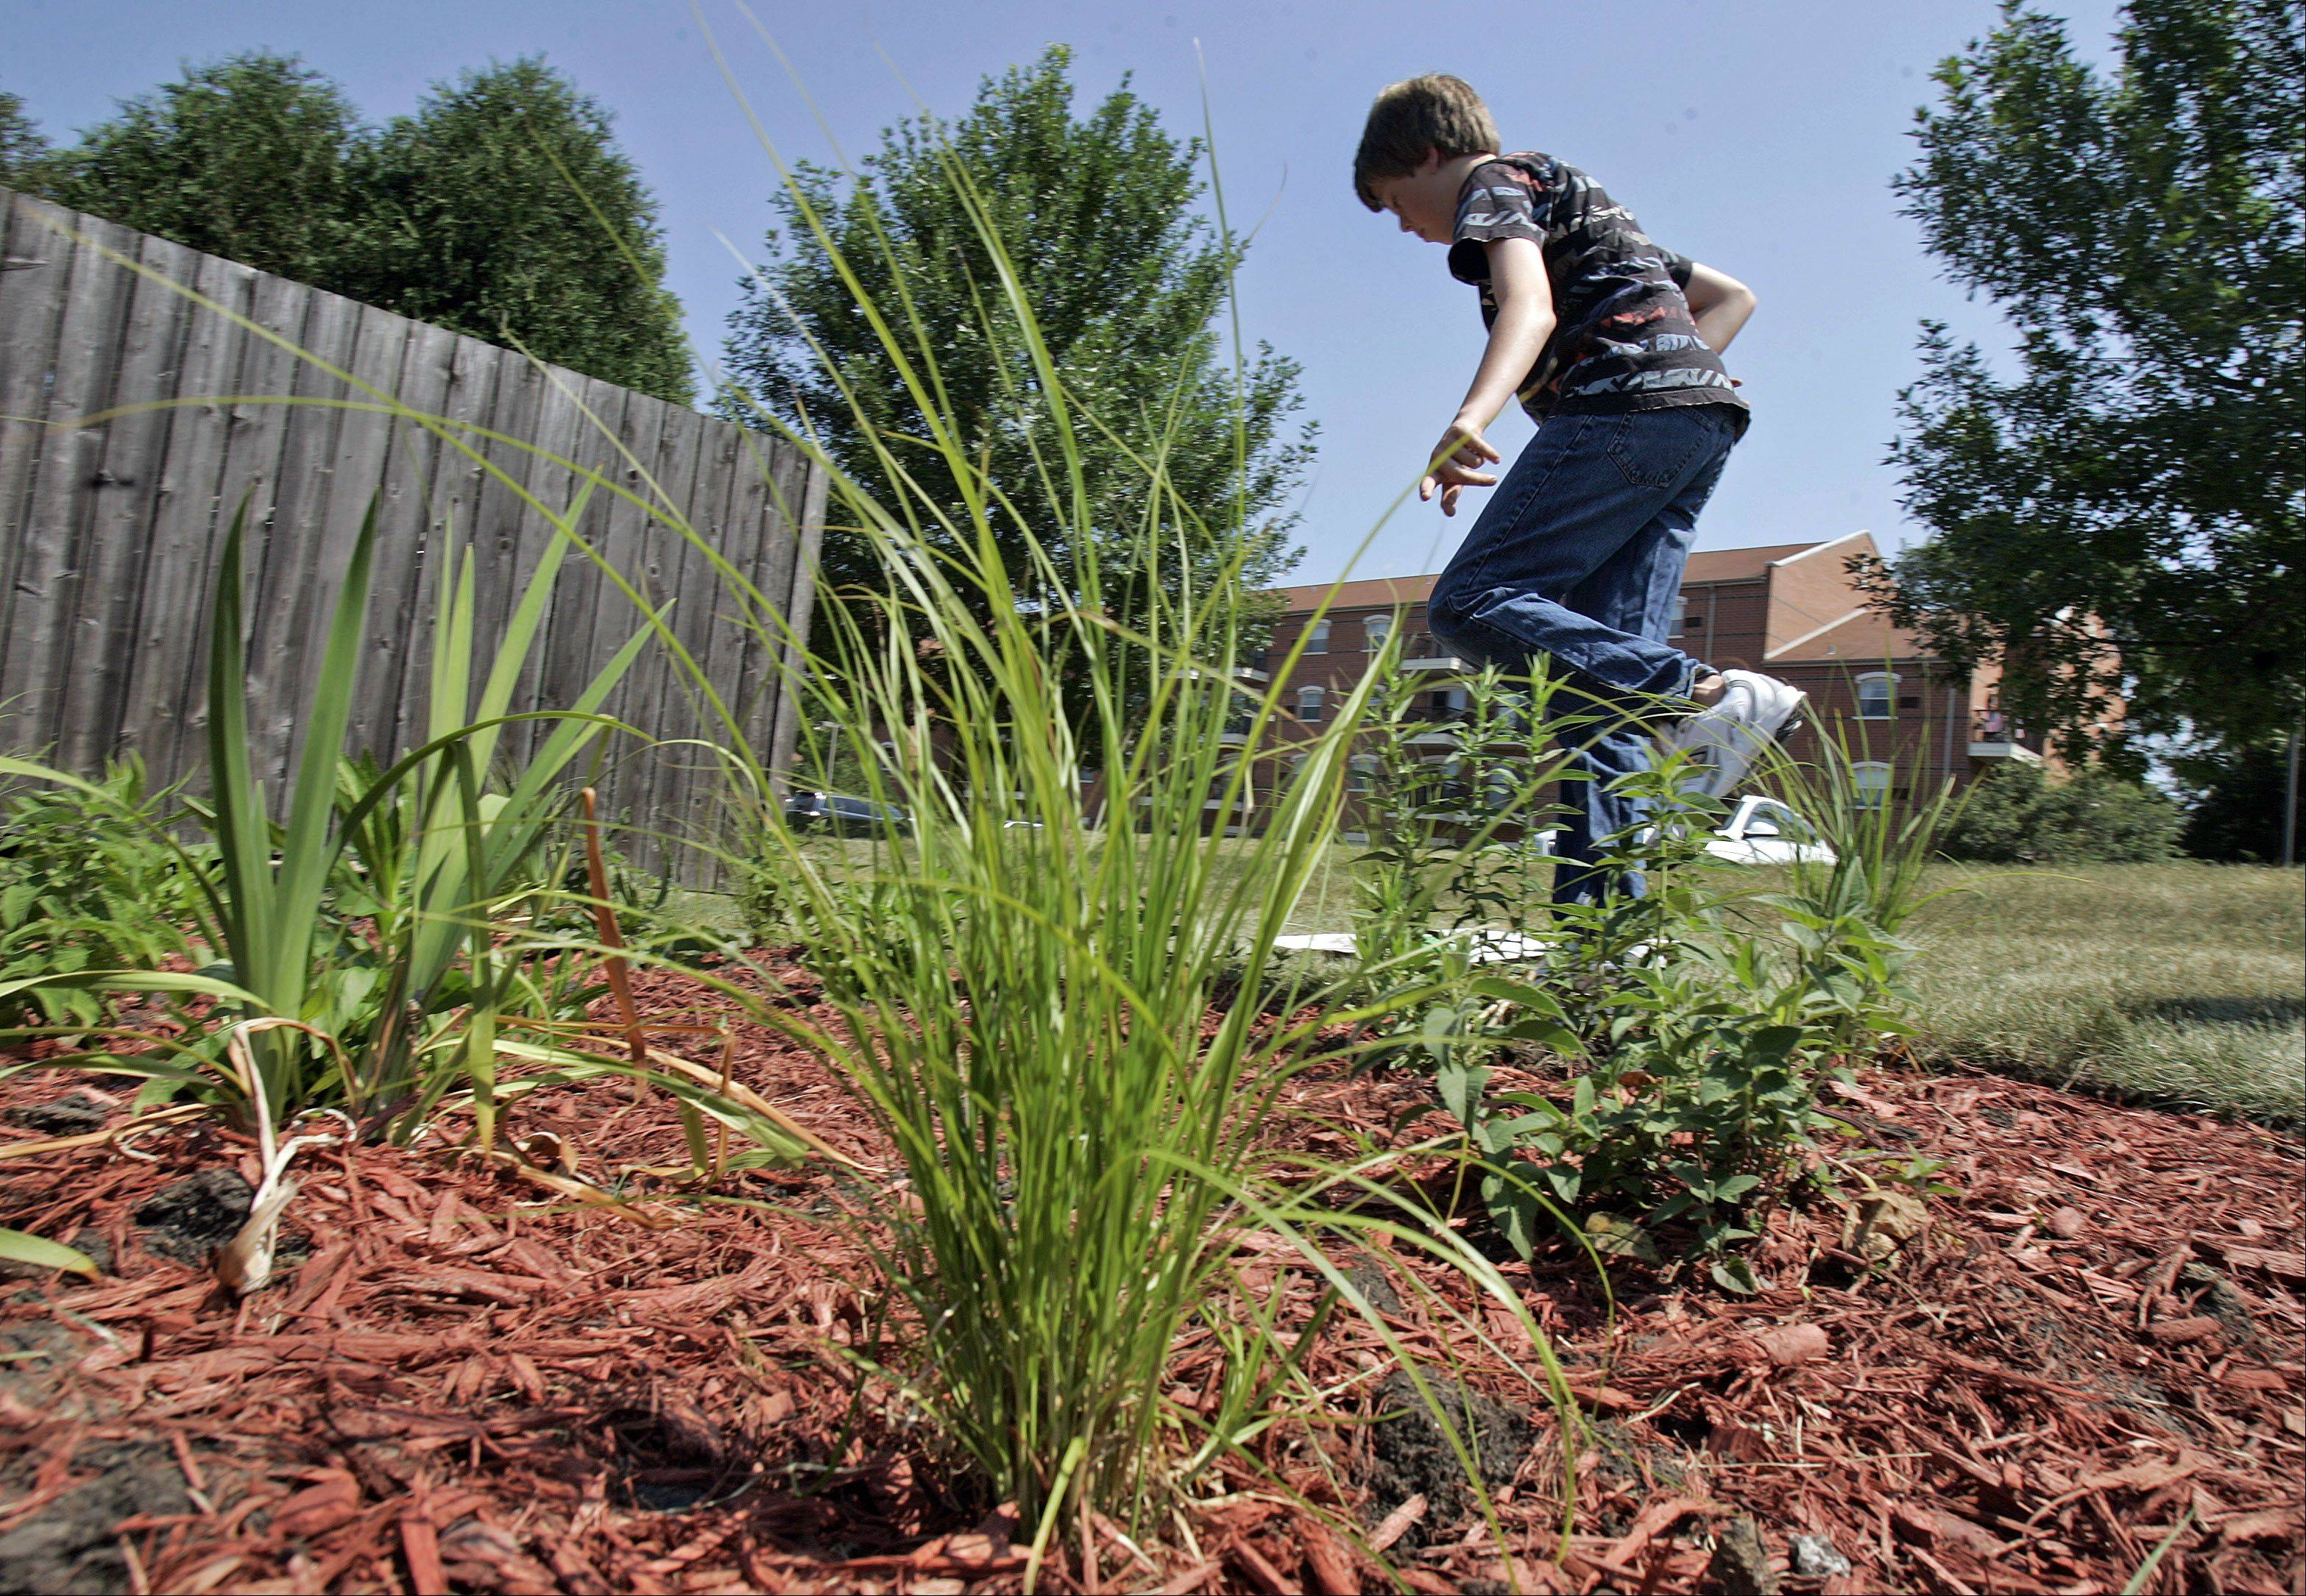 Brian Mace, 13, of Grayslake tends to his rain garden planted outside the Grayslake Public Library during its official opening recently. Mace completed the project as part of his seventh-grade service learning project at Prairie Crossing Charter School. The garden features six varieties of plants that benefit from rain water runoff.